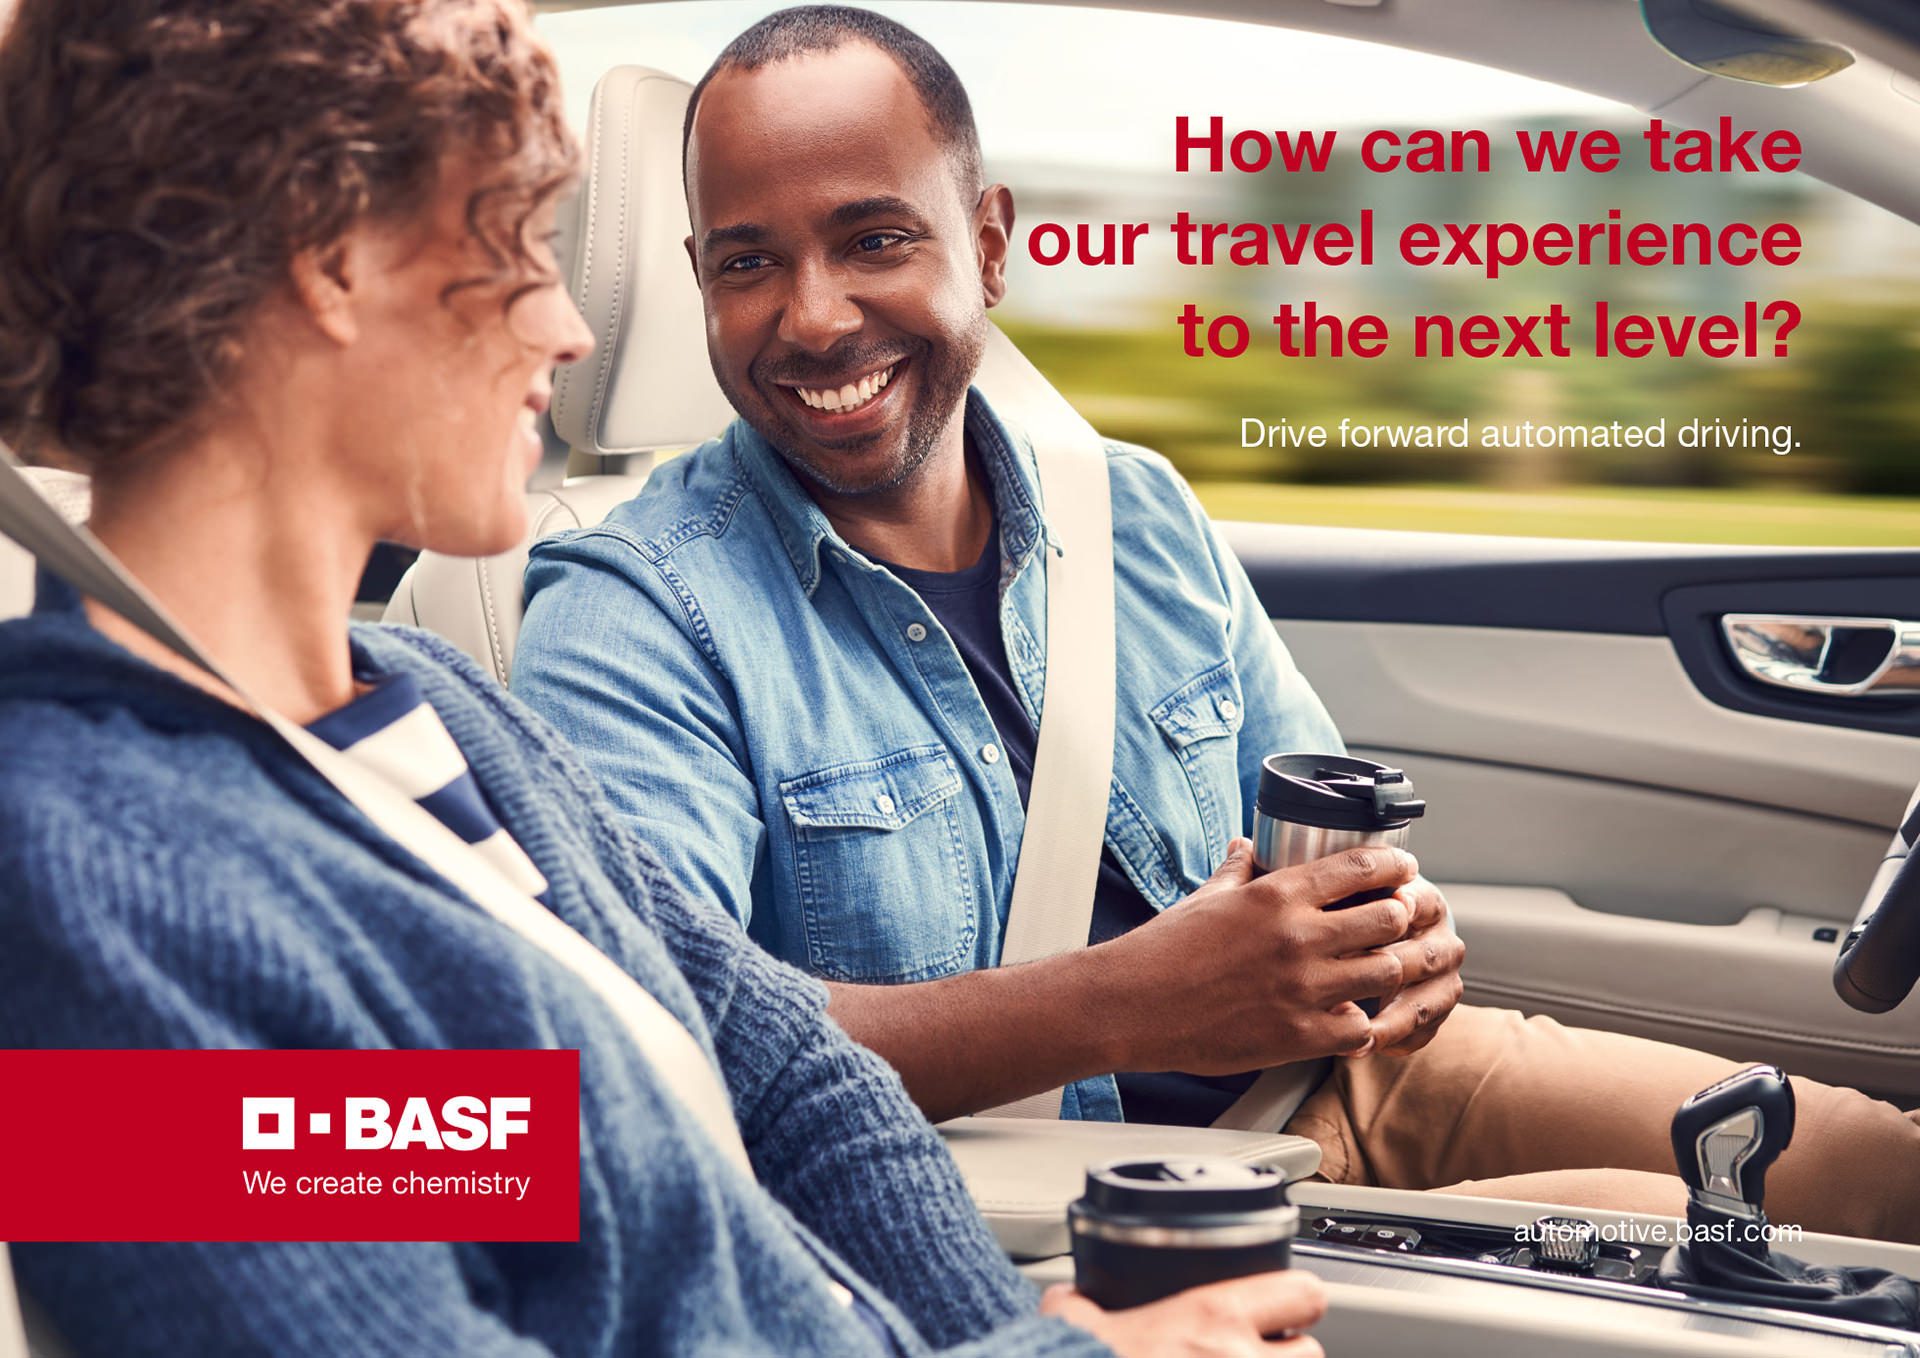 basf-kampagne-auto-paar-automated-driving